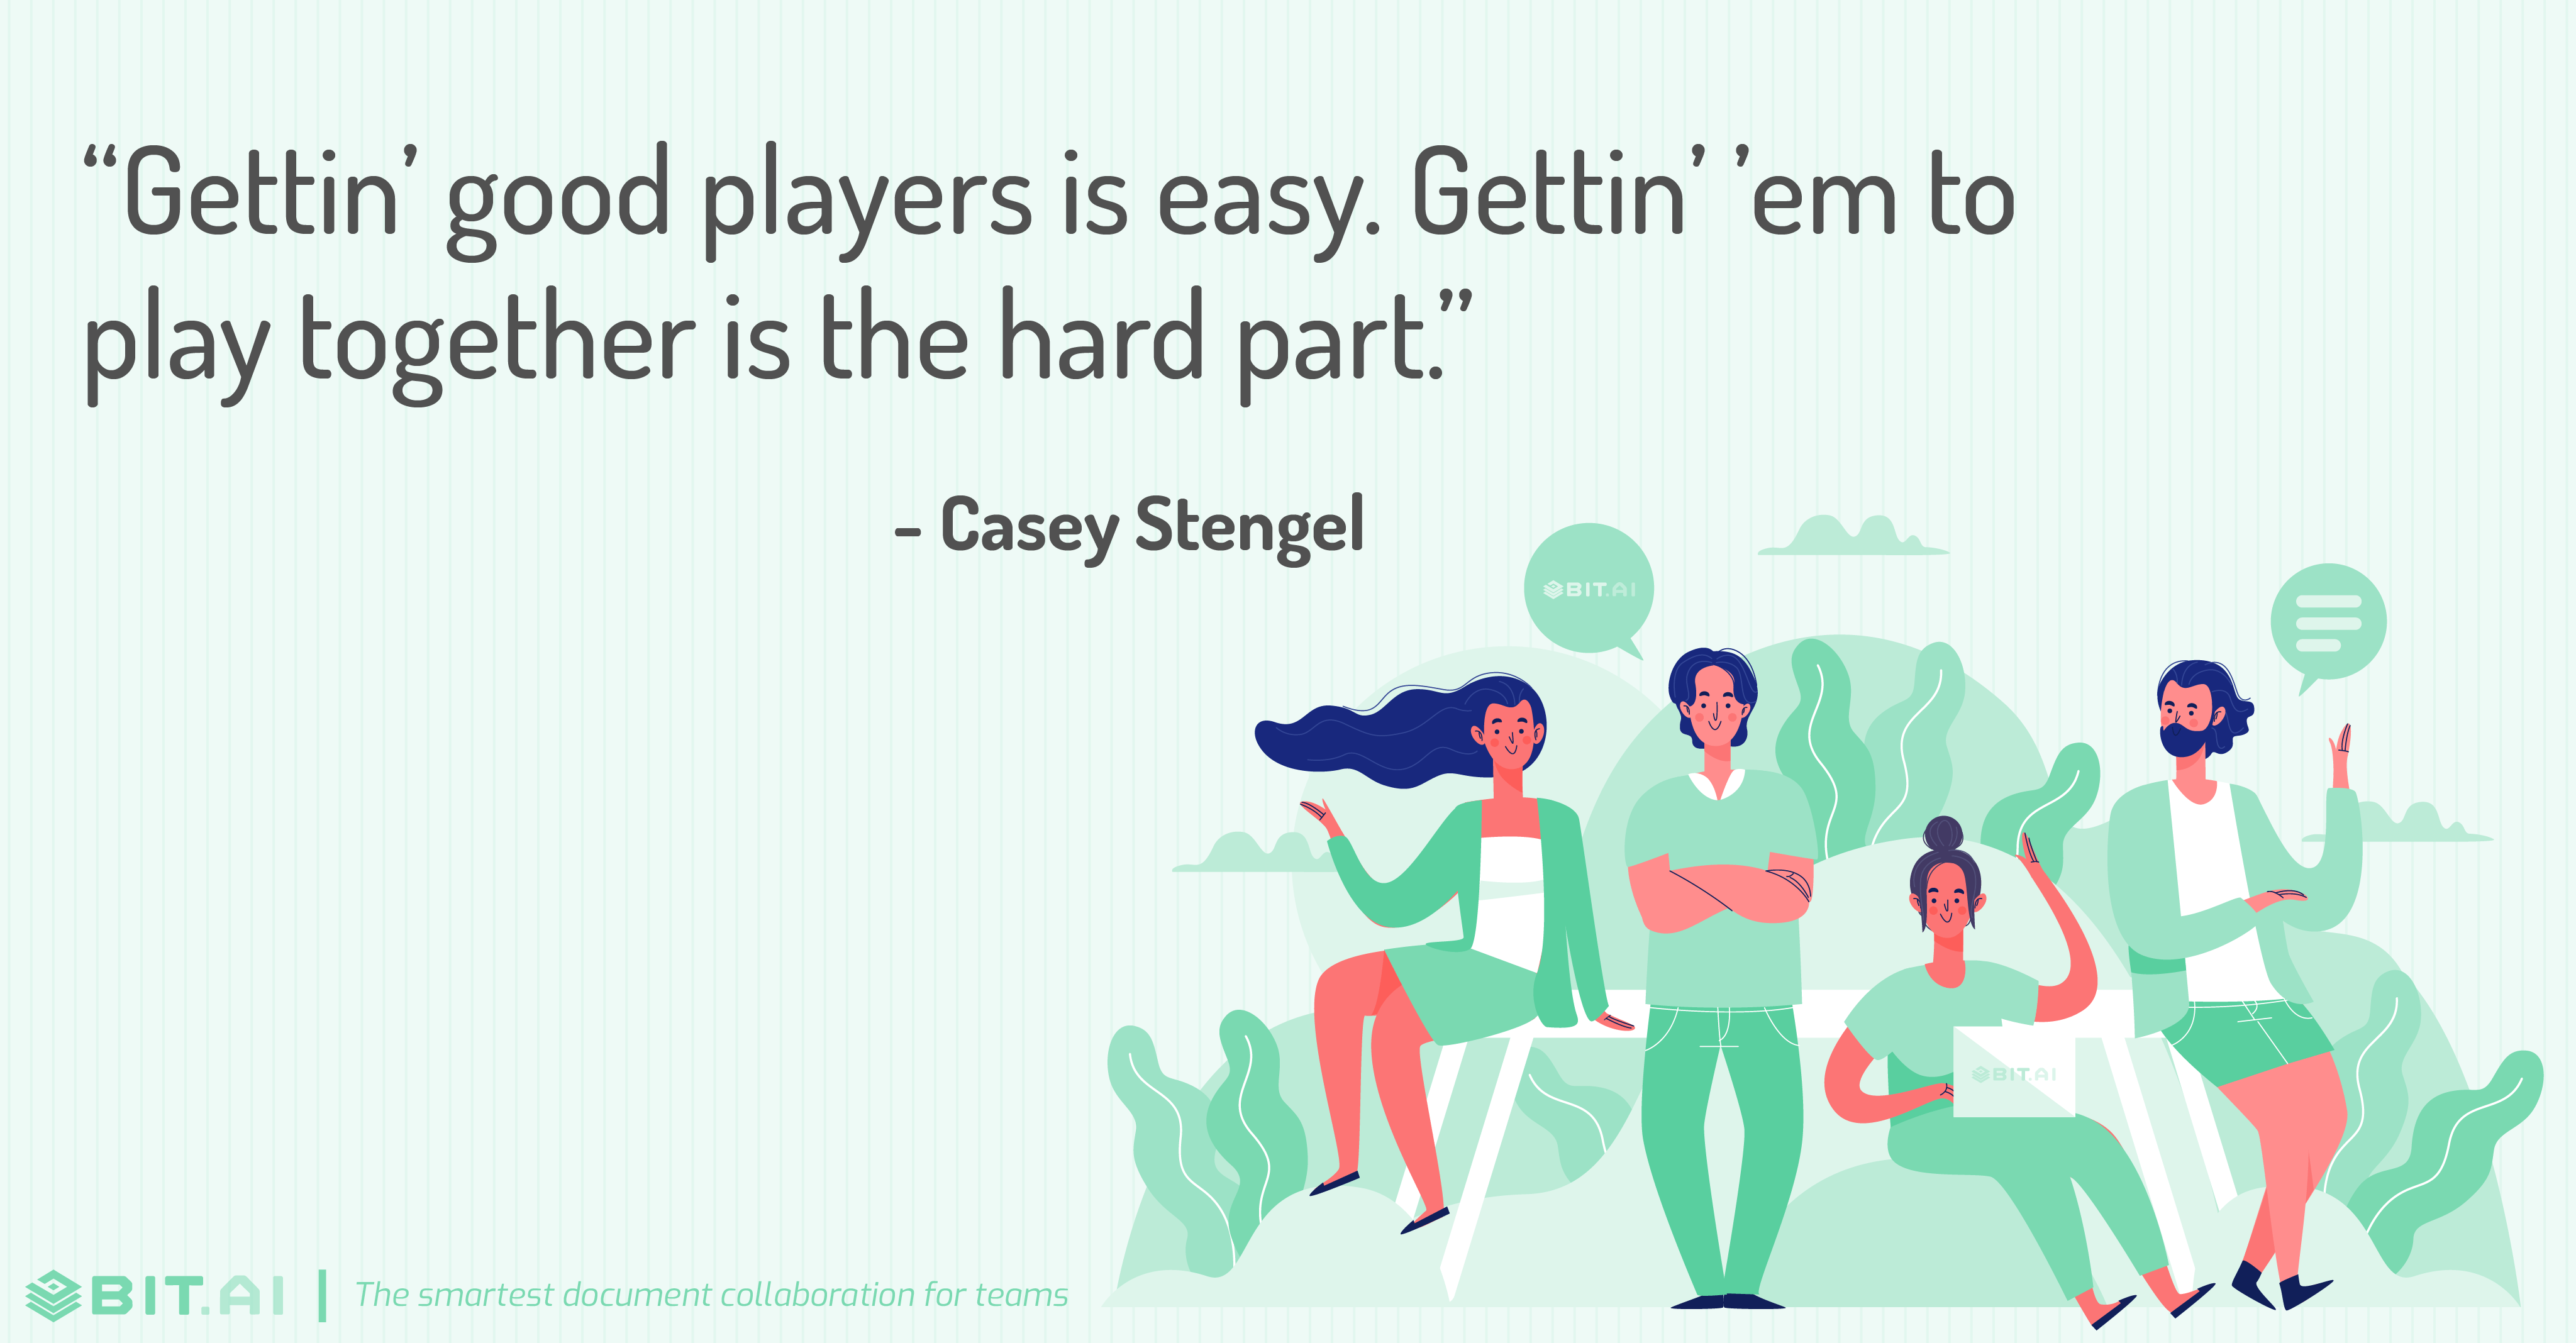 """Gettin' good players is easy. Gettin' 'em to play together is the hard part."" - Casey Stengel"